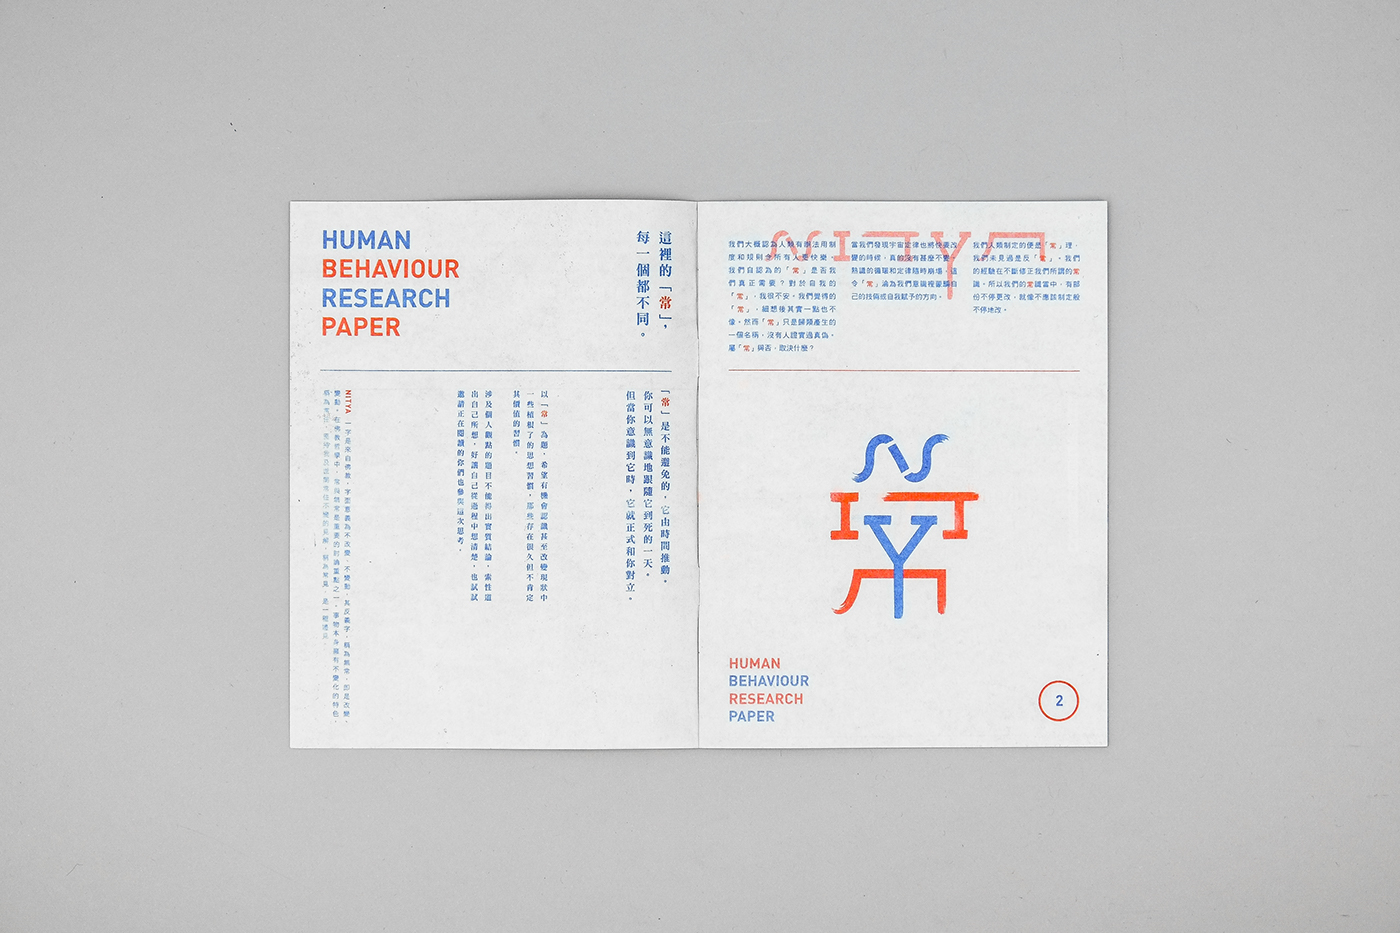 Humanity research papers